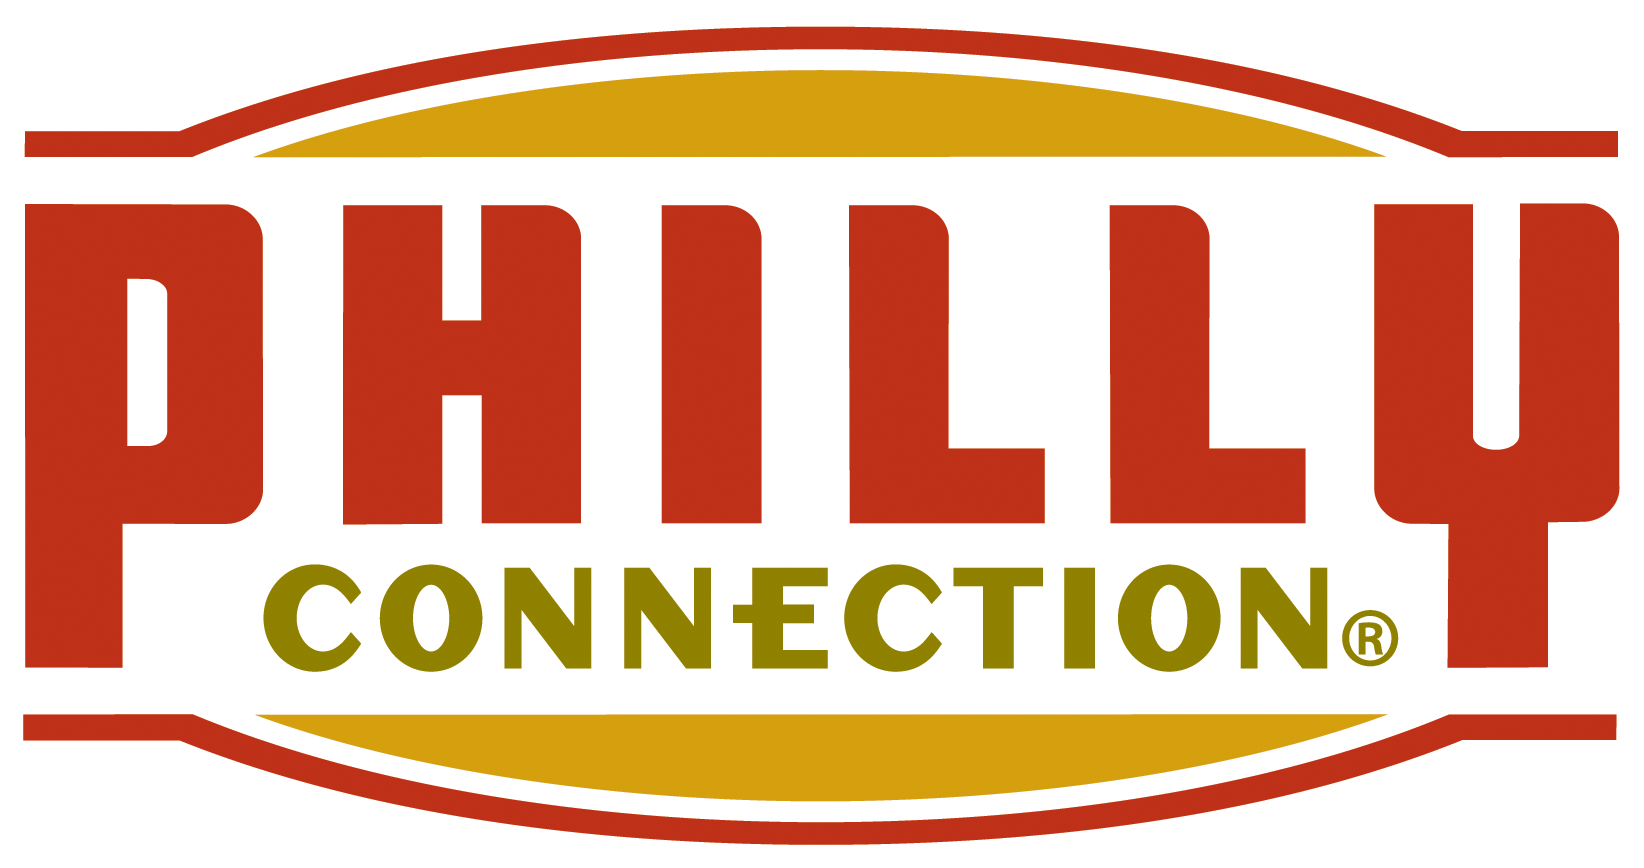 Philly Connection (KSU) Logo